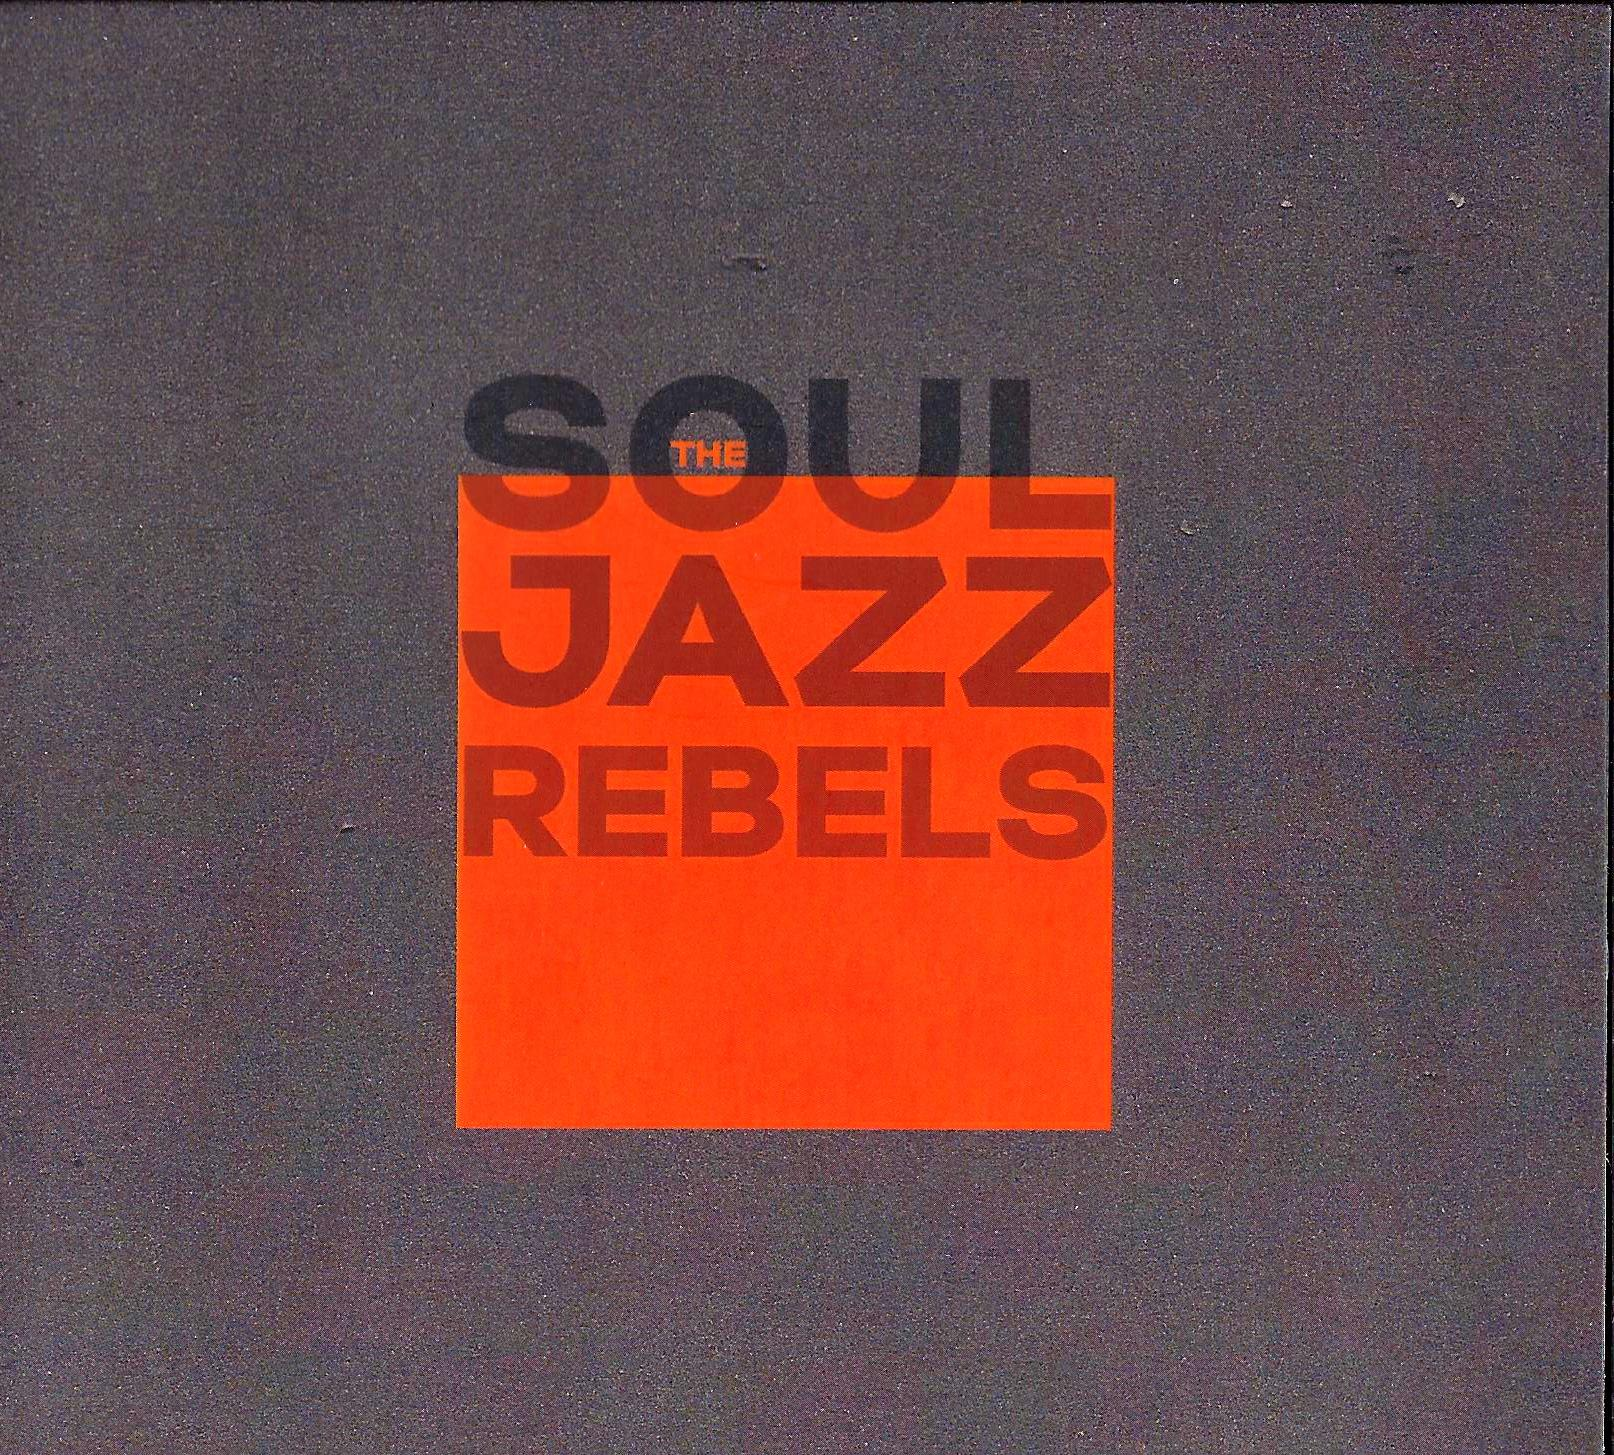 THE SOUL JAZZ REBELS